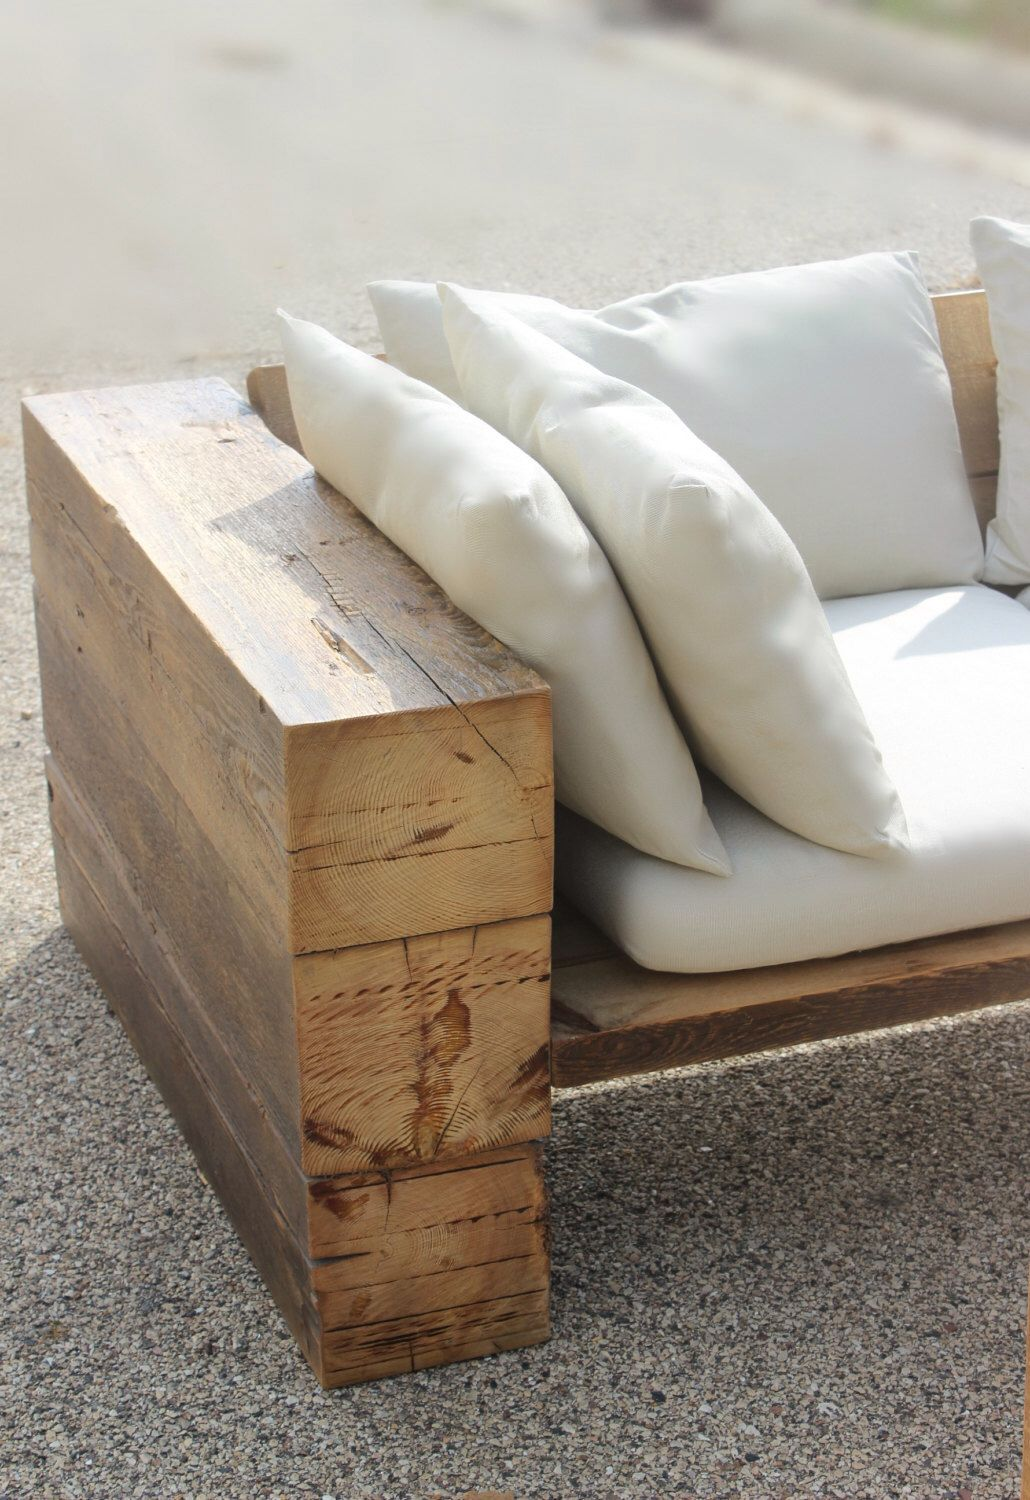 by sectional outdoor com pin free couch indoor listing s etsy sofa wood dendroco reclaimed rustic on shipping